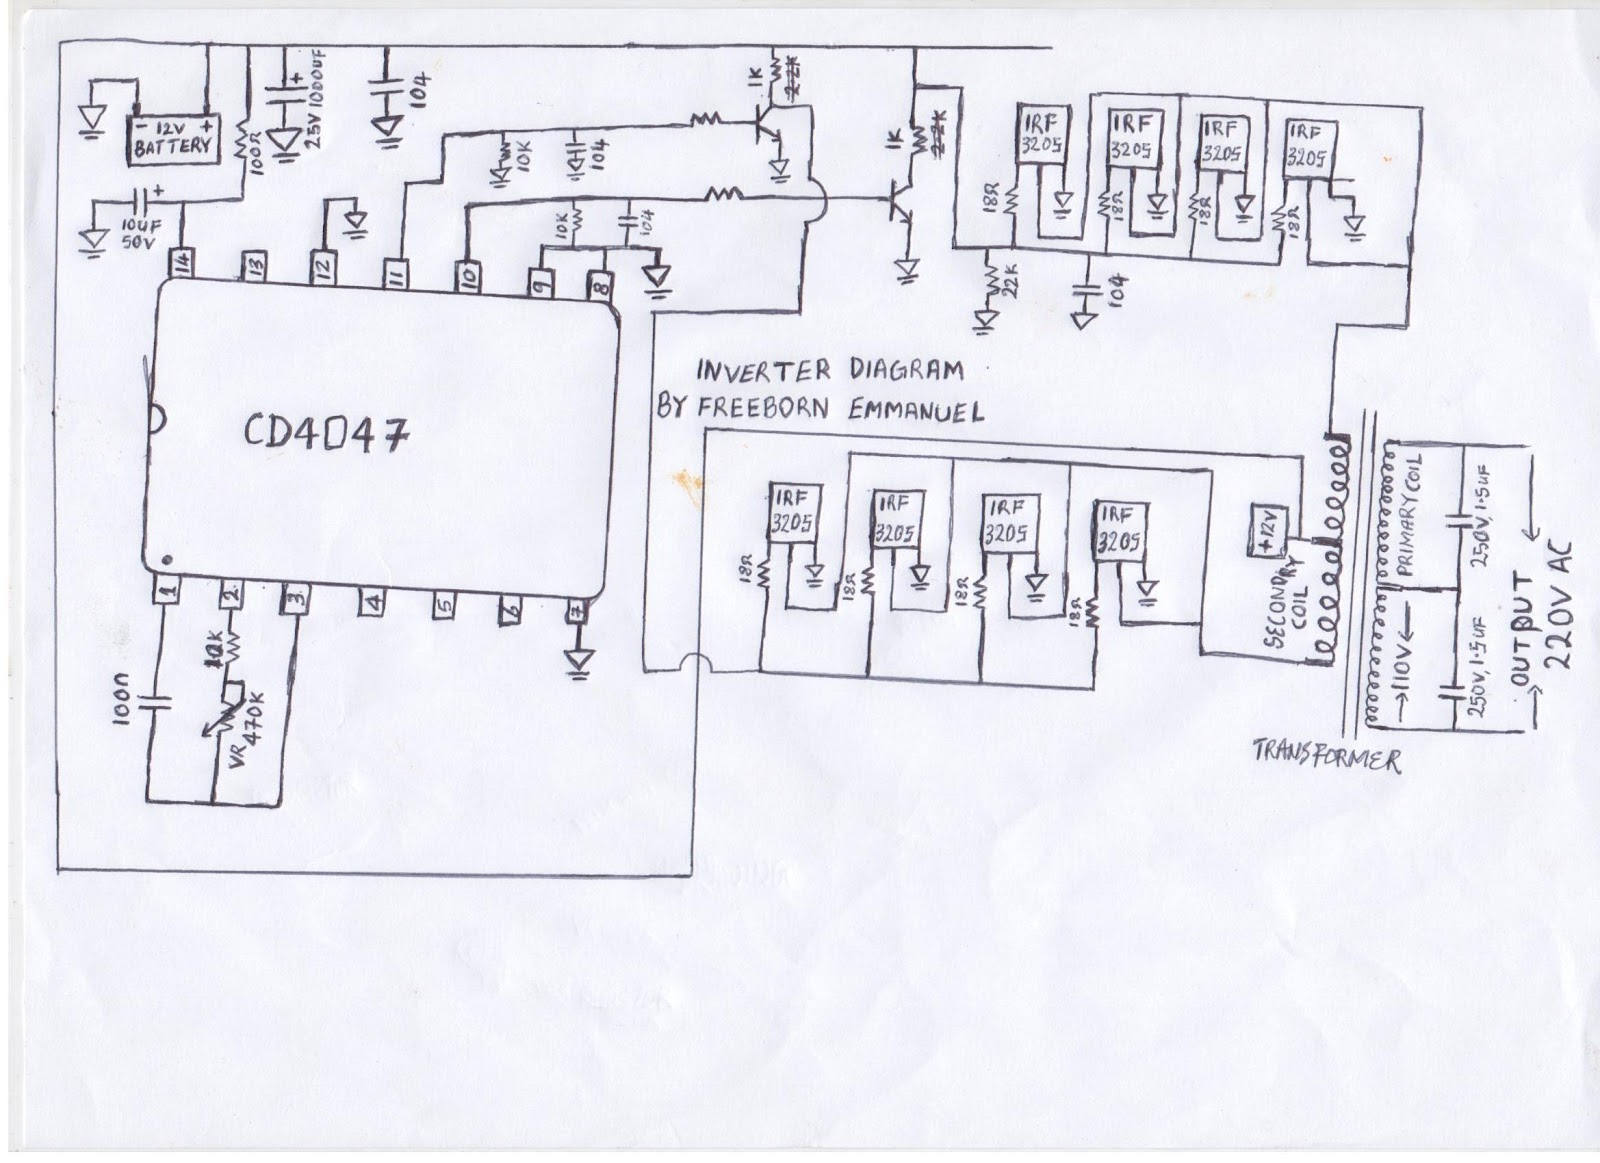 Watt Stopper Dimming Wiring Diagram Wiring Library